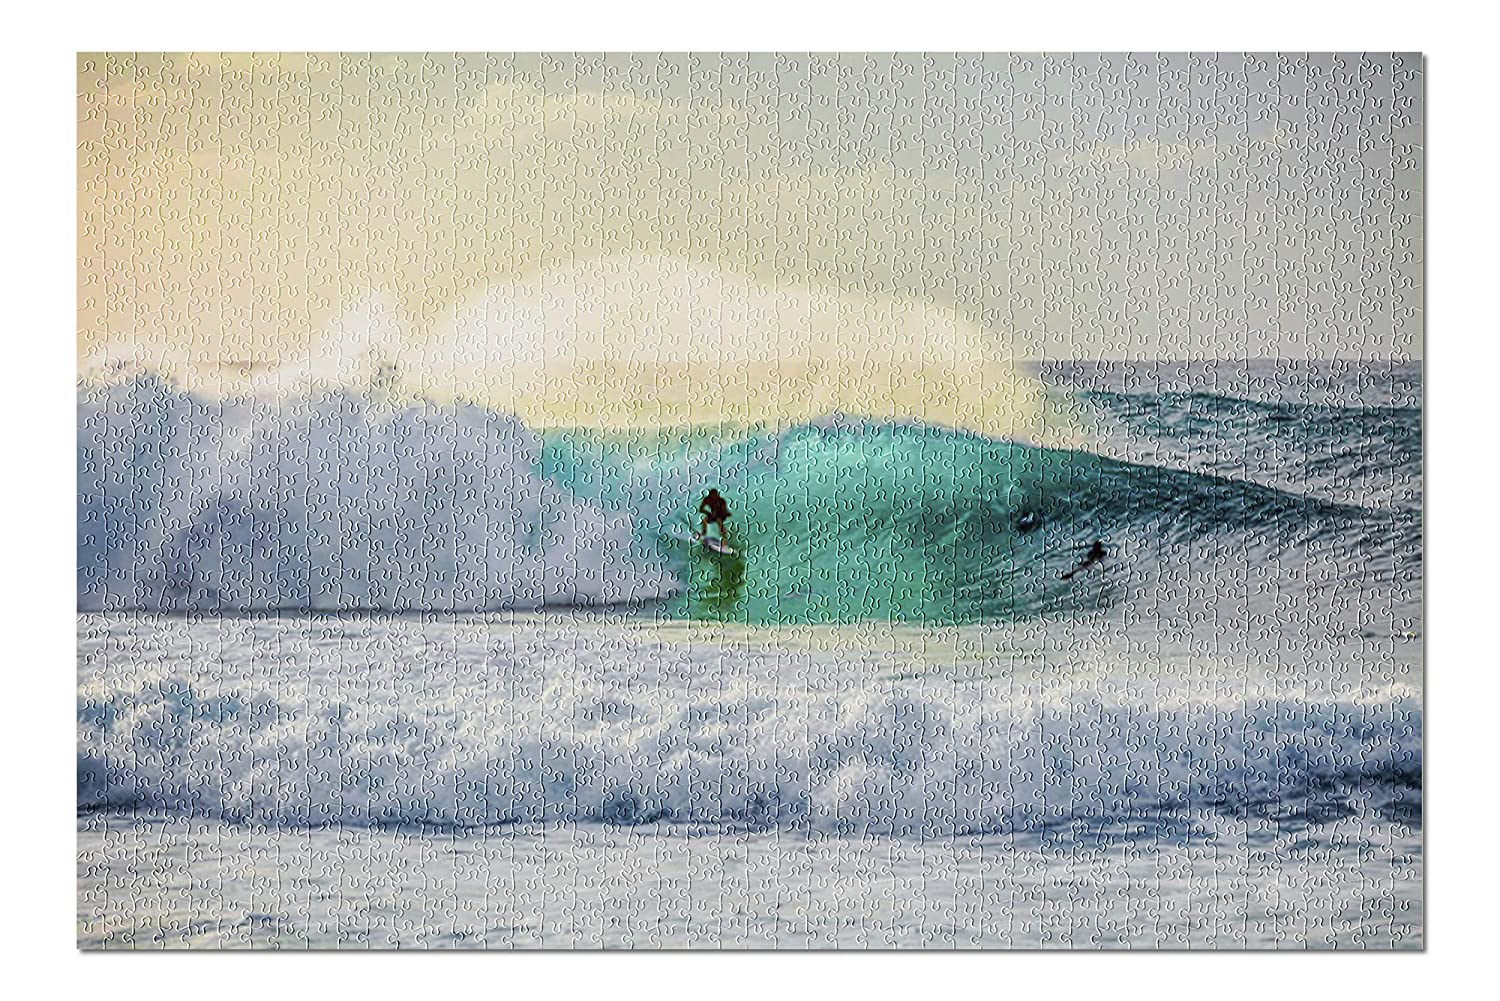 8ad90e59cb Amazon.com  Surfing Waves at Bonzai Pipeline on the North Shore of Oahu